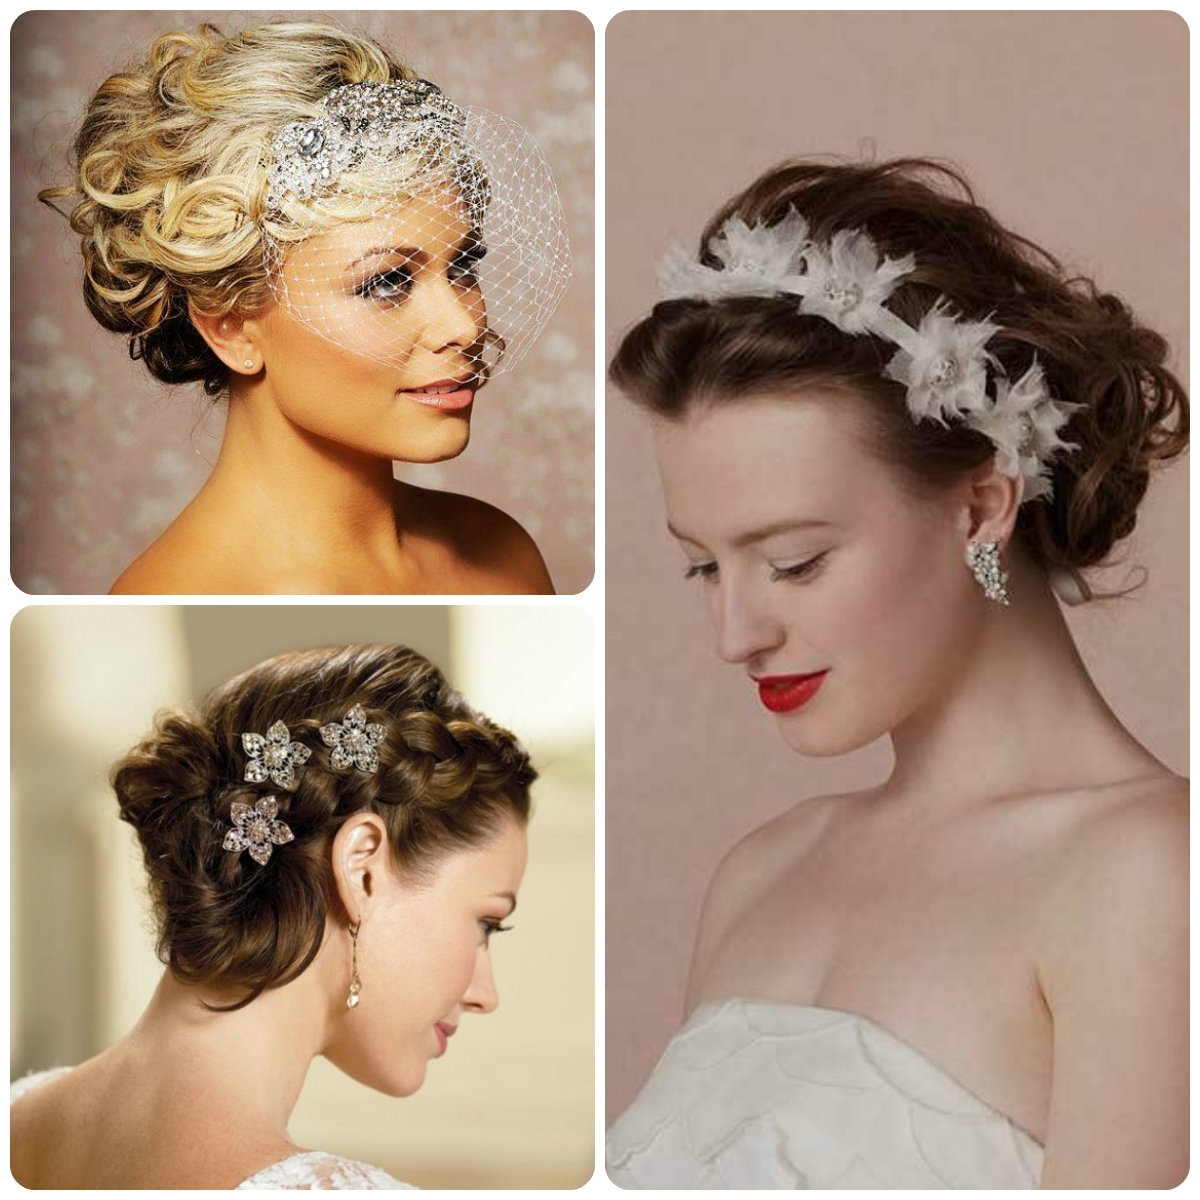 Elegant Updo Wedding Hairstyles Spring 2015 | Hairstyles 2017, Hair Intended For Wedding Hair Updo Hairstyles (View 7 of 15)